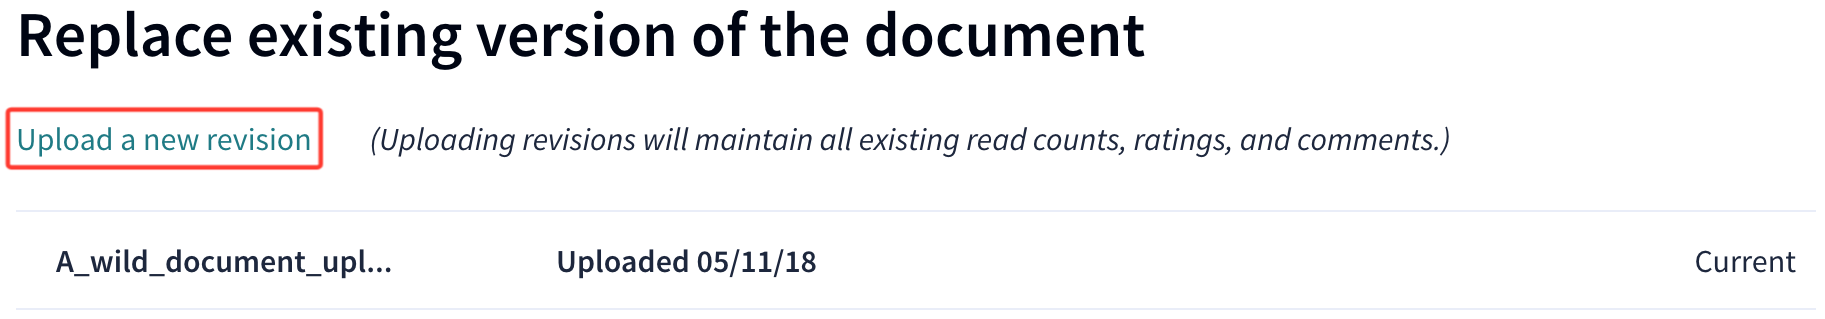 Uploading_documents_-_Upload_a_new_revision.png